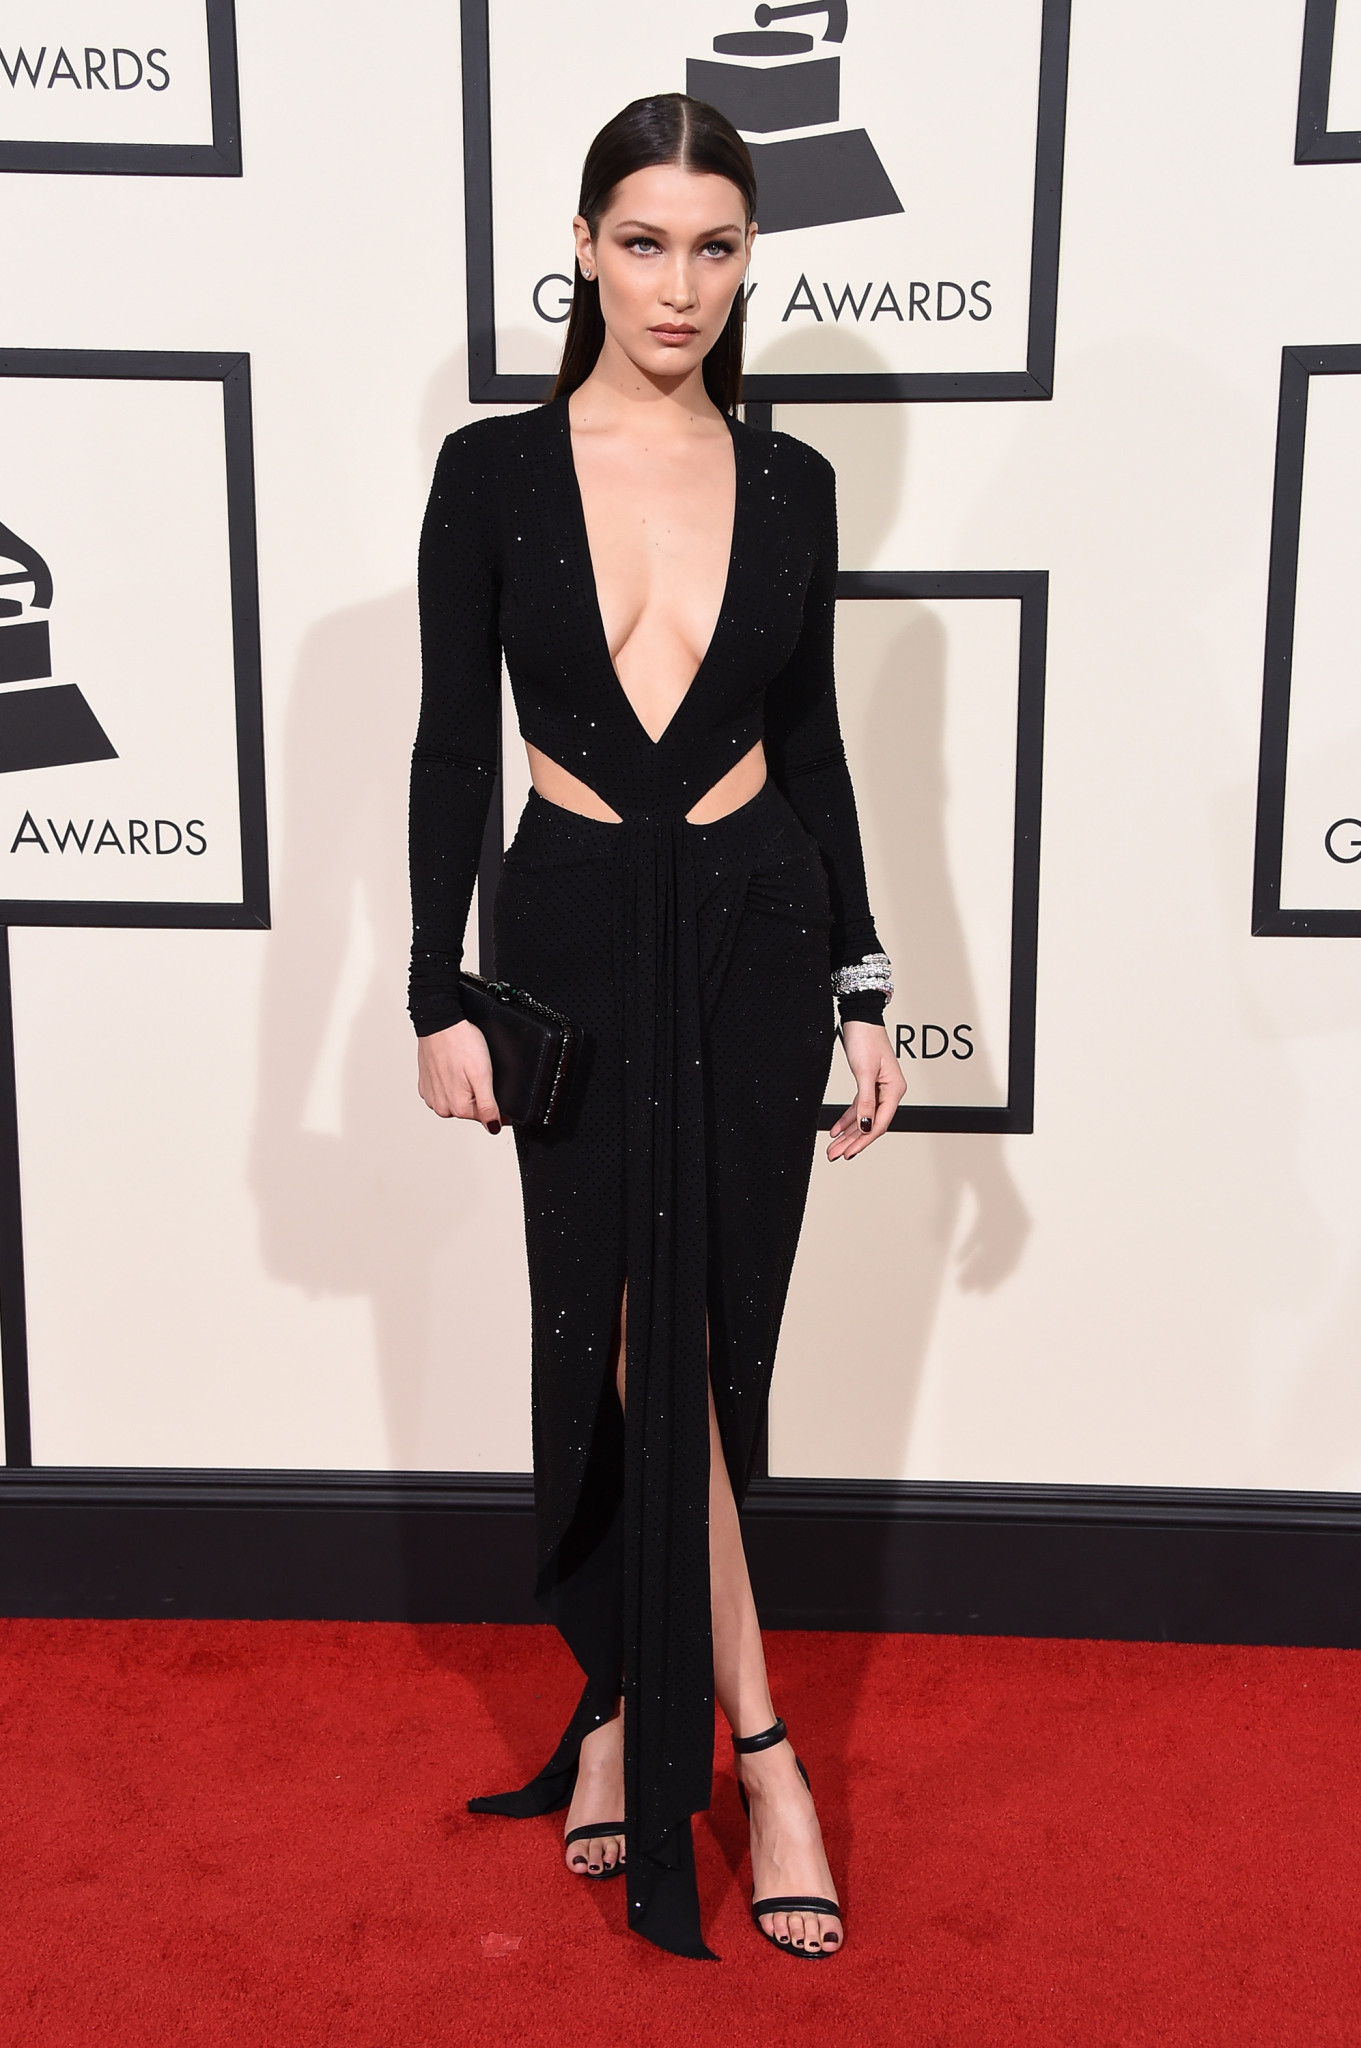 LOS ANGELES, CA - FEBRUARY 15: Model Bella Hadid attends The 58th GRAMMY Awards at Staples Center on February 15, 2016 in Los Angeles, California. (Photo by Steve Granitz/WireImage)